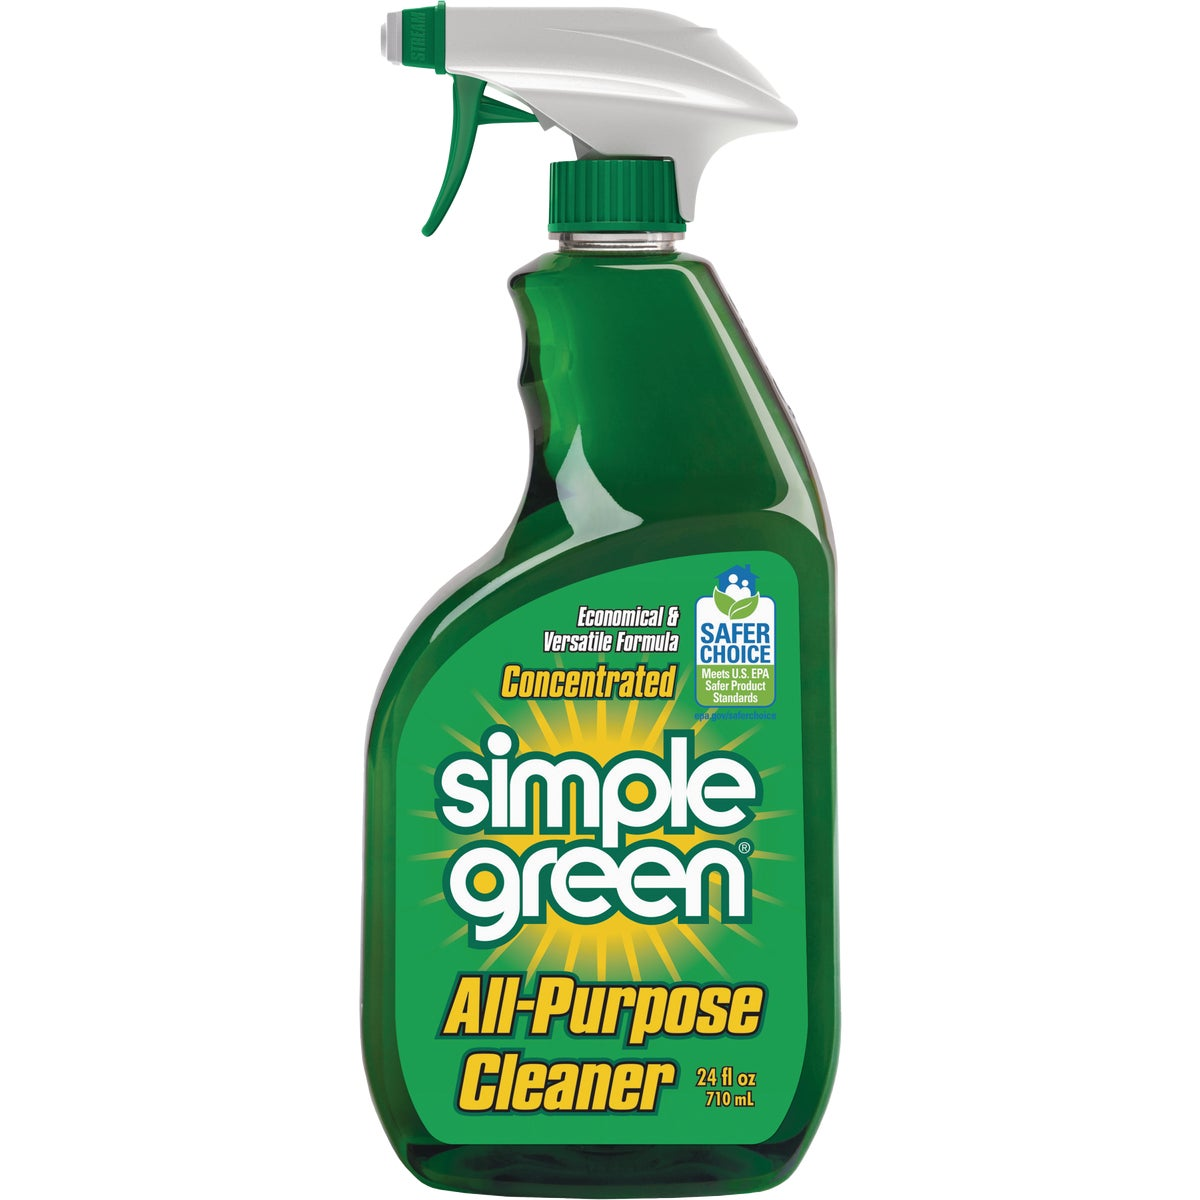 24OZ CLEANER/DEGREASER - 2710001213013 by Sunshine Makers Inc